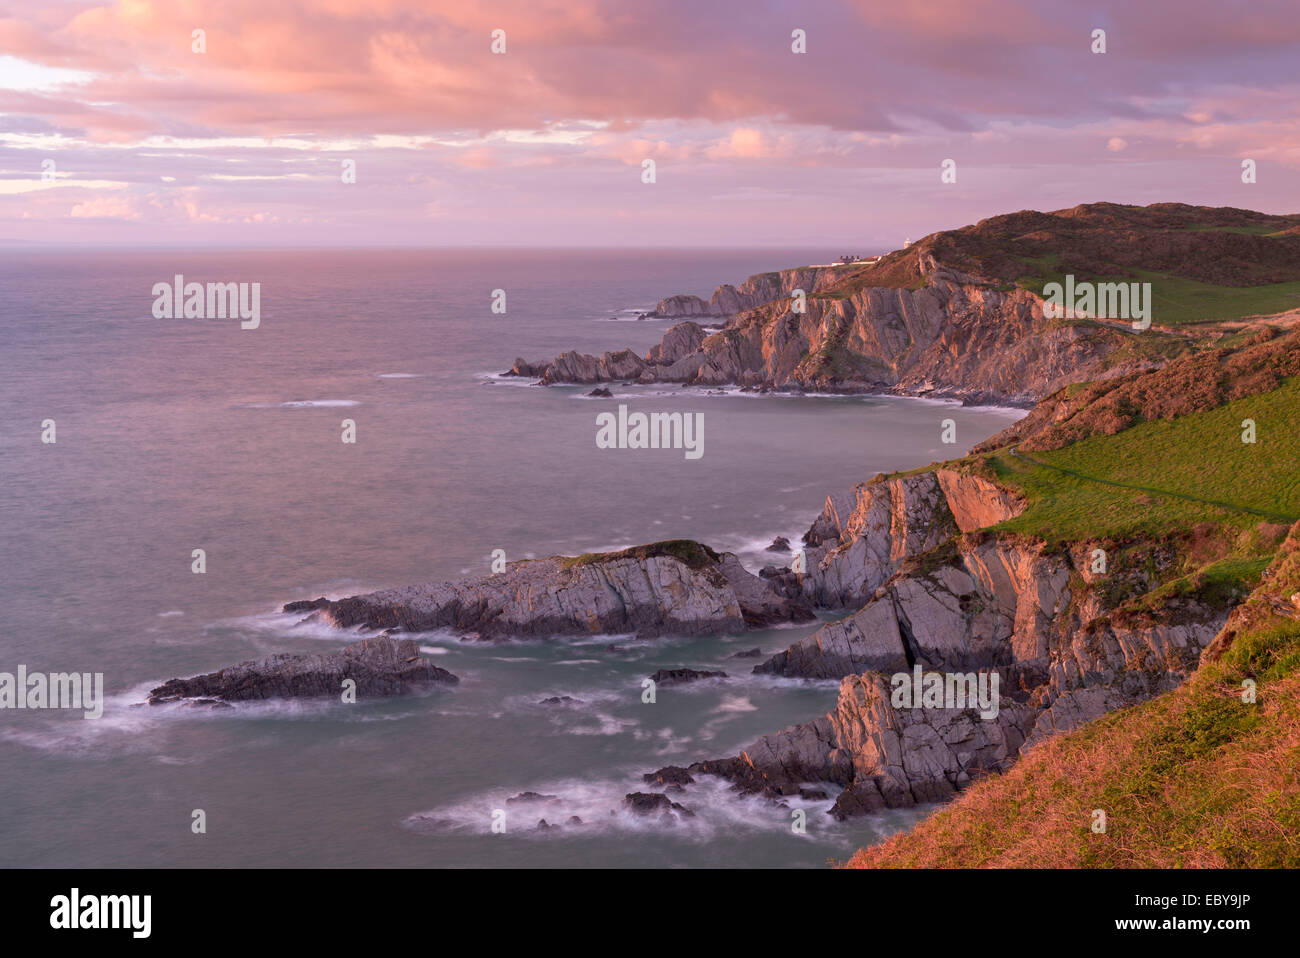 Glorius evening light on the North Devon coast near Ilfracombe, England. Spring (May) 2014 - Stock Image